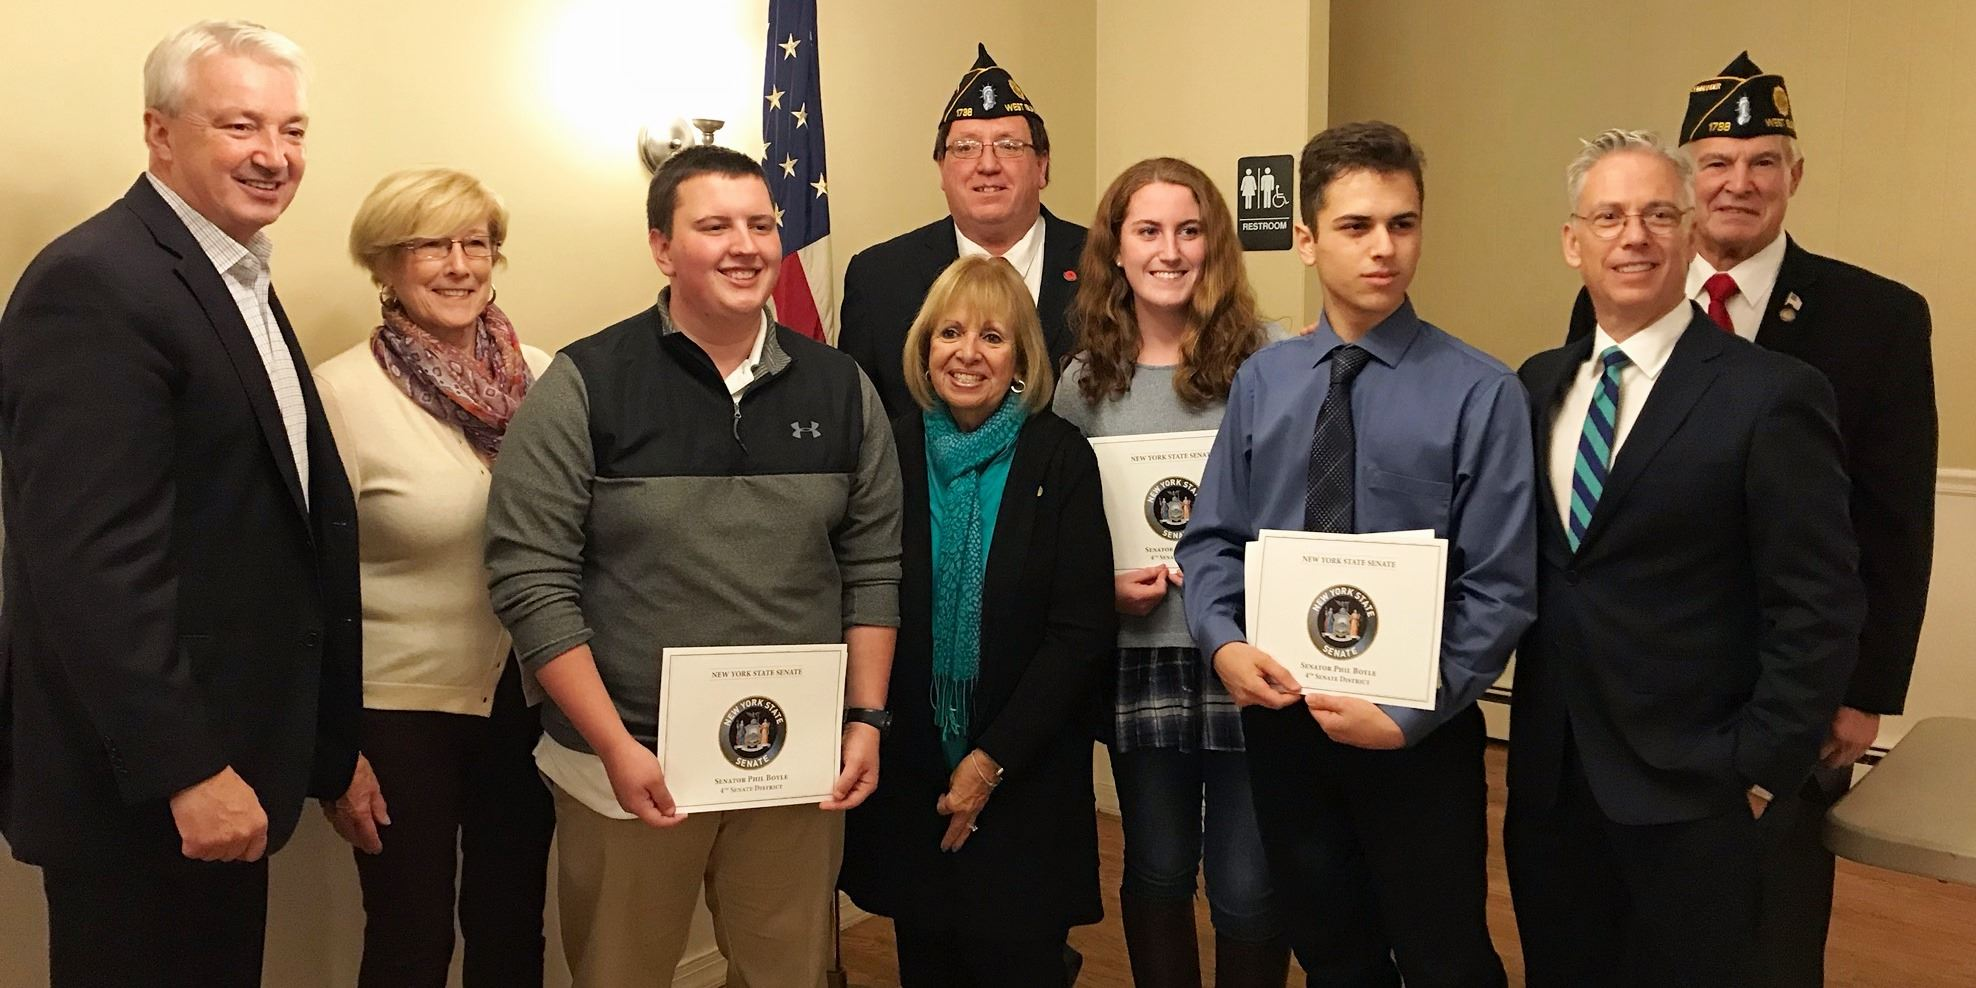 WI American Legion Boys and Girls State Awards